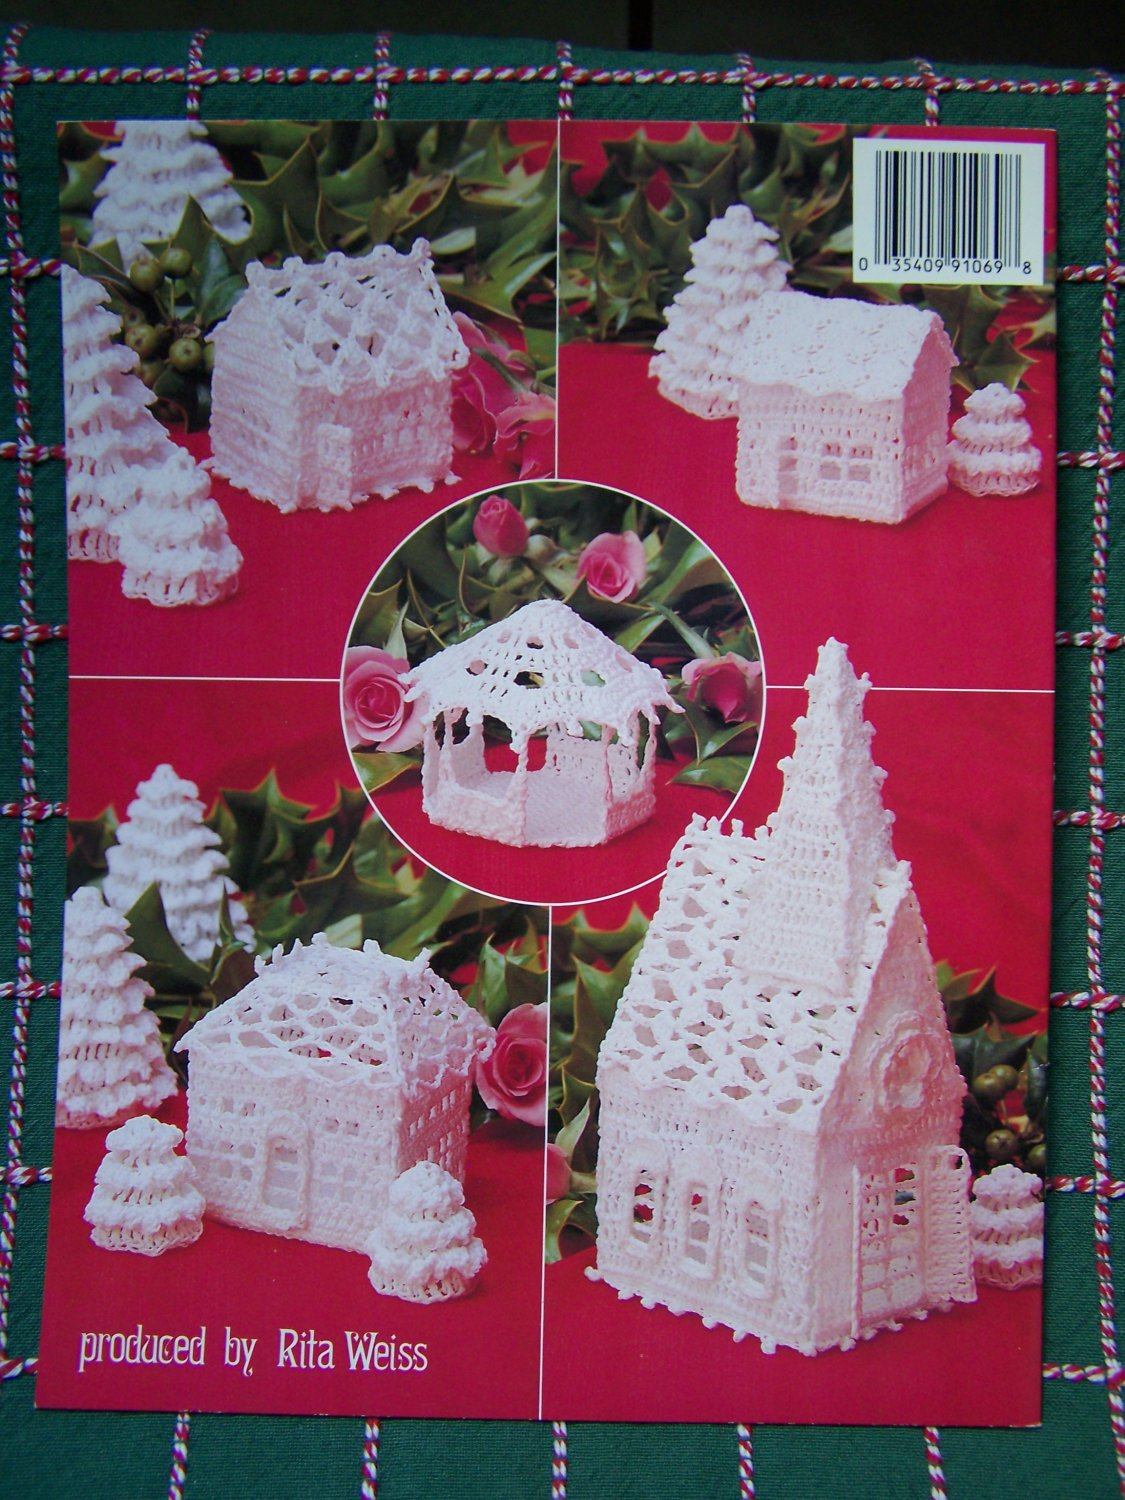 Vintage Thread Crochet Patterns Christmas Village Church